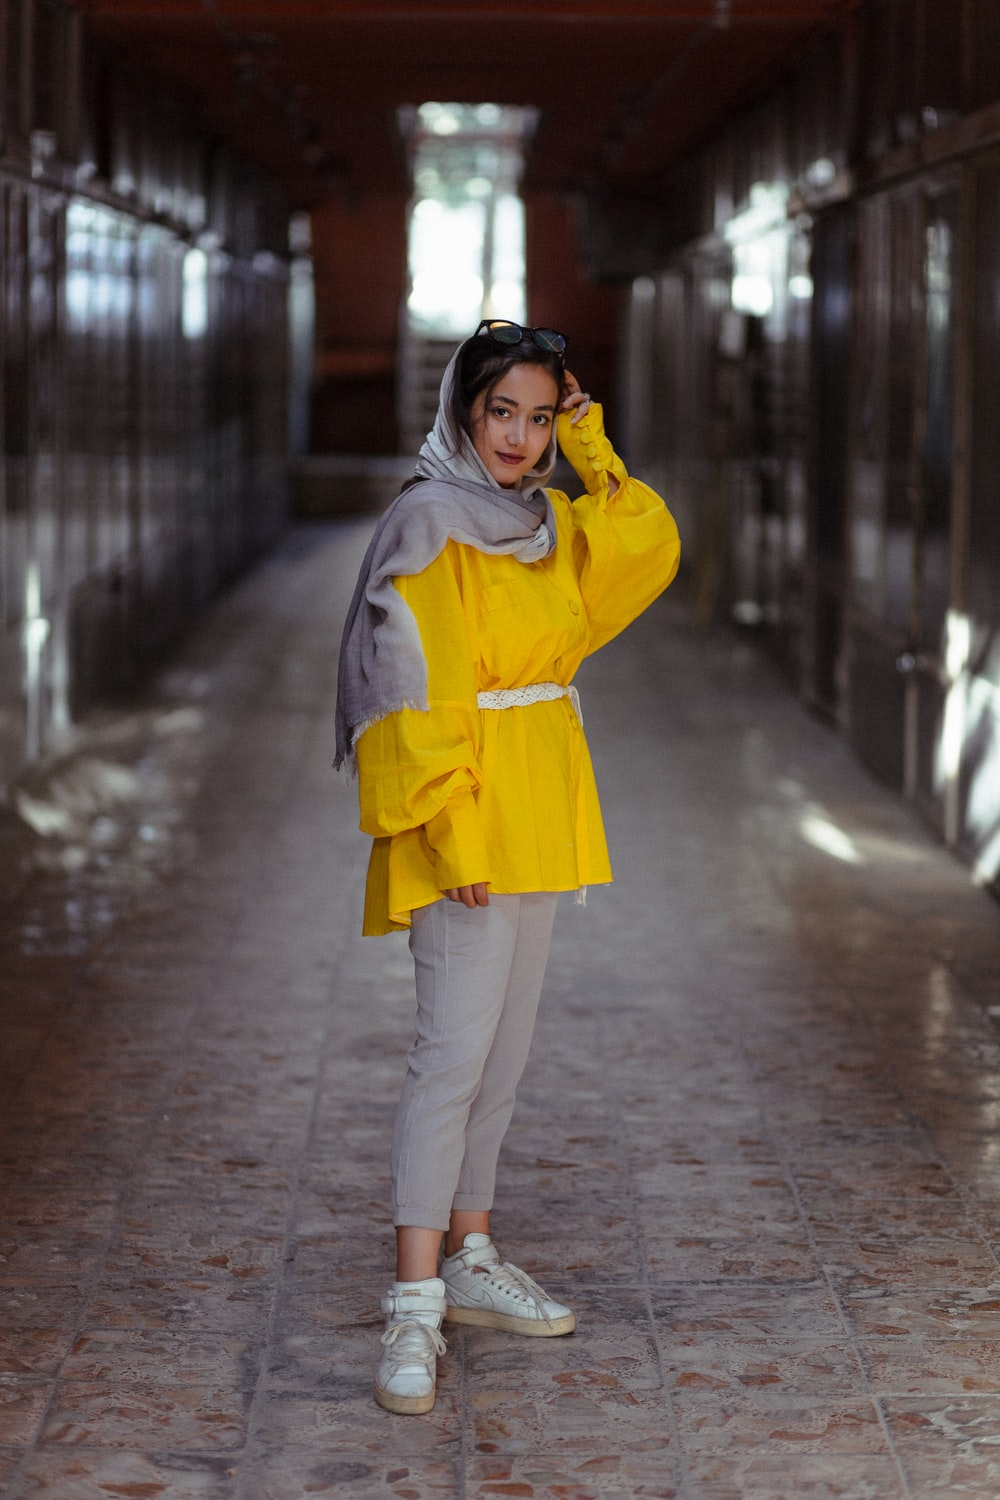 woman in yellow coat and white pants standing on sidewalk during daytime